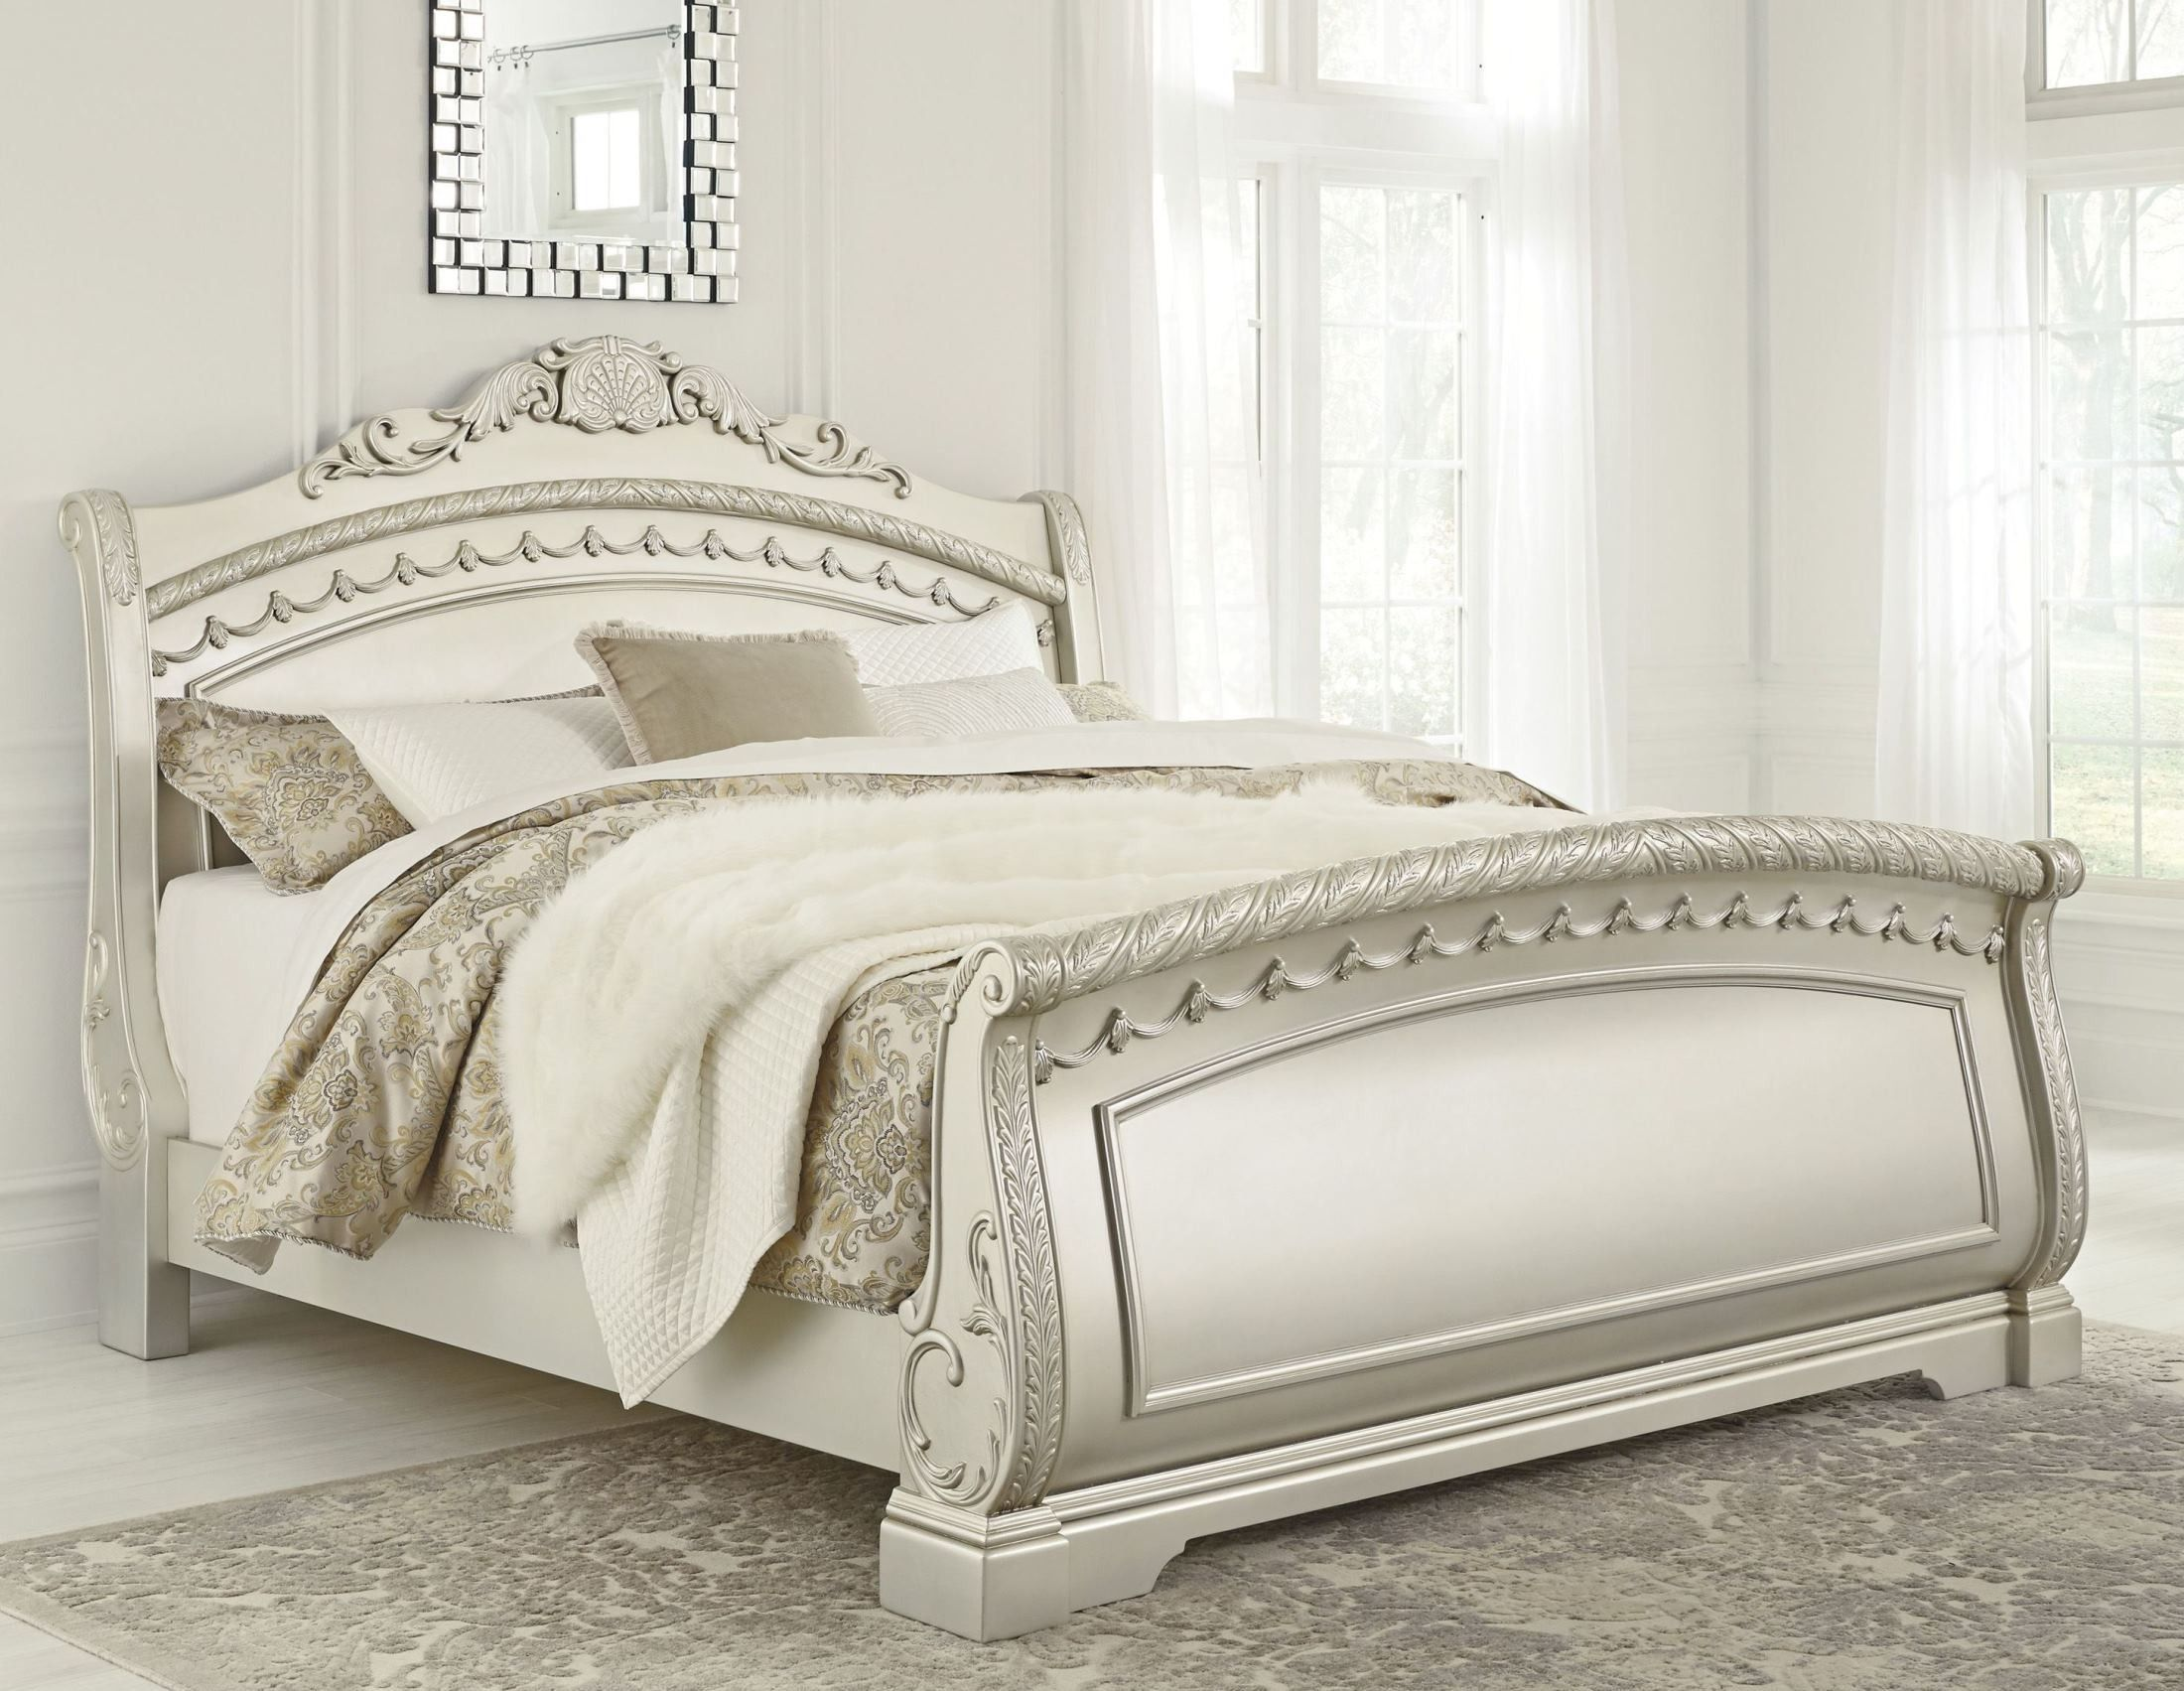 Cassimore North Shore Pearl Silver Sleigh Bedroom Set 2 Queen Sleigh Bed Bedroom Decor